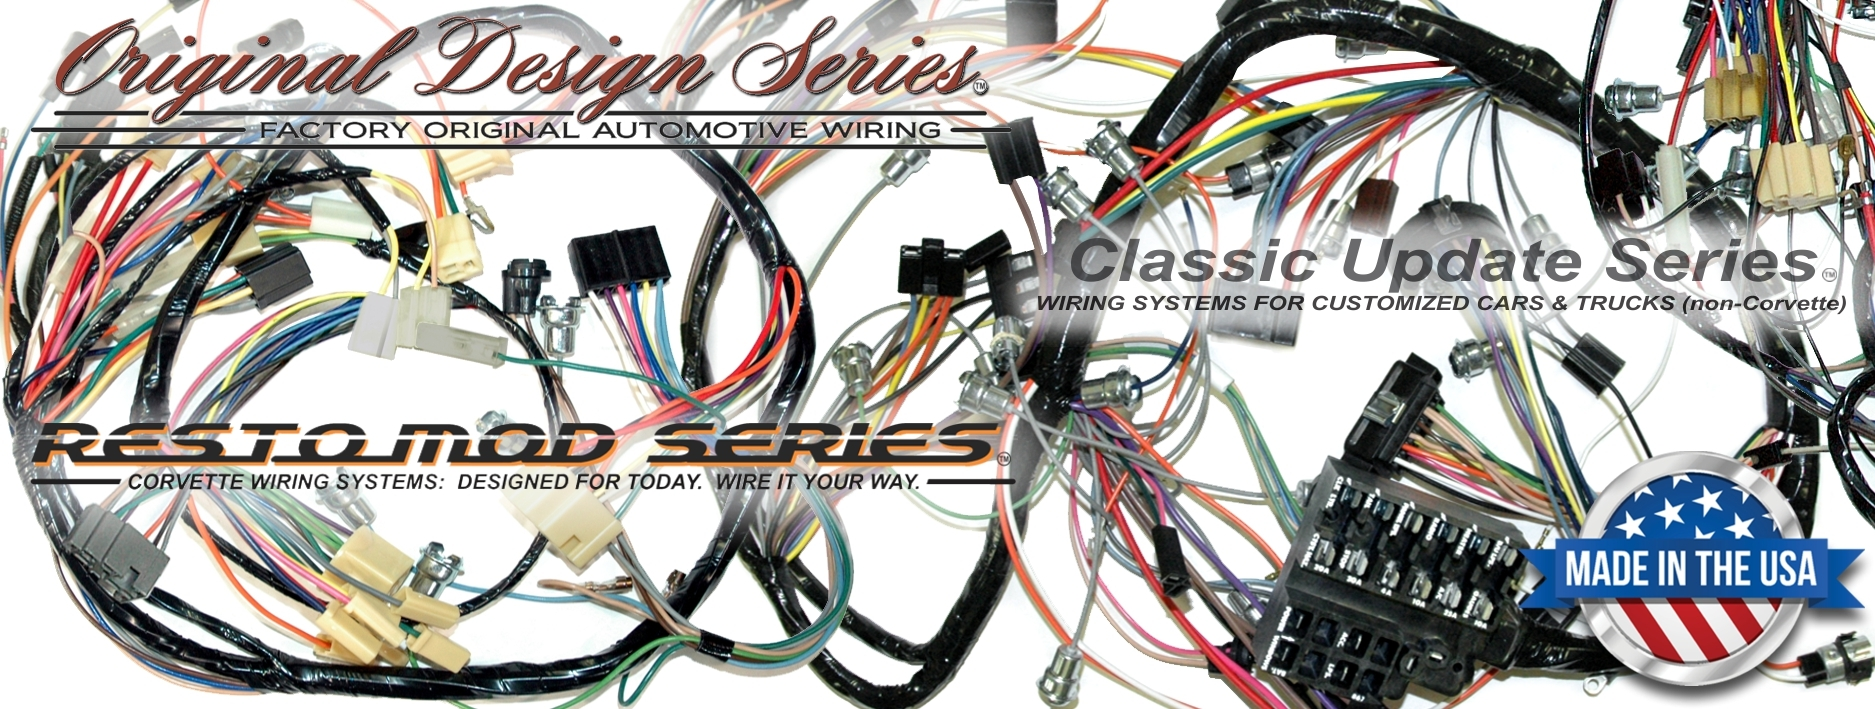 hight resolution of classic dodge truck wiring harness wiring diagram centre exact oem reproduction wiring harnesses and restomod wiring